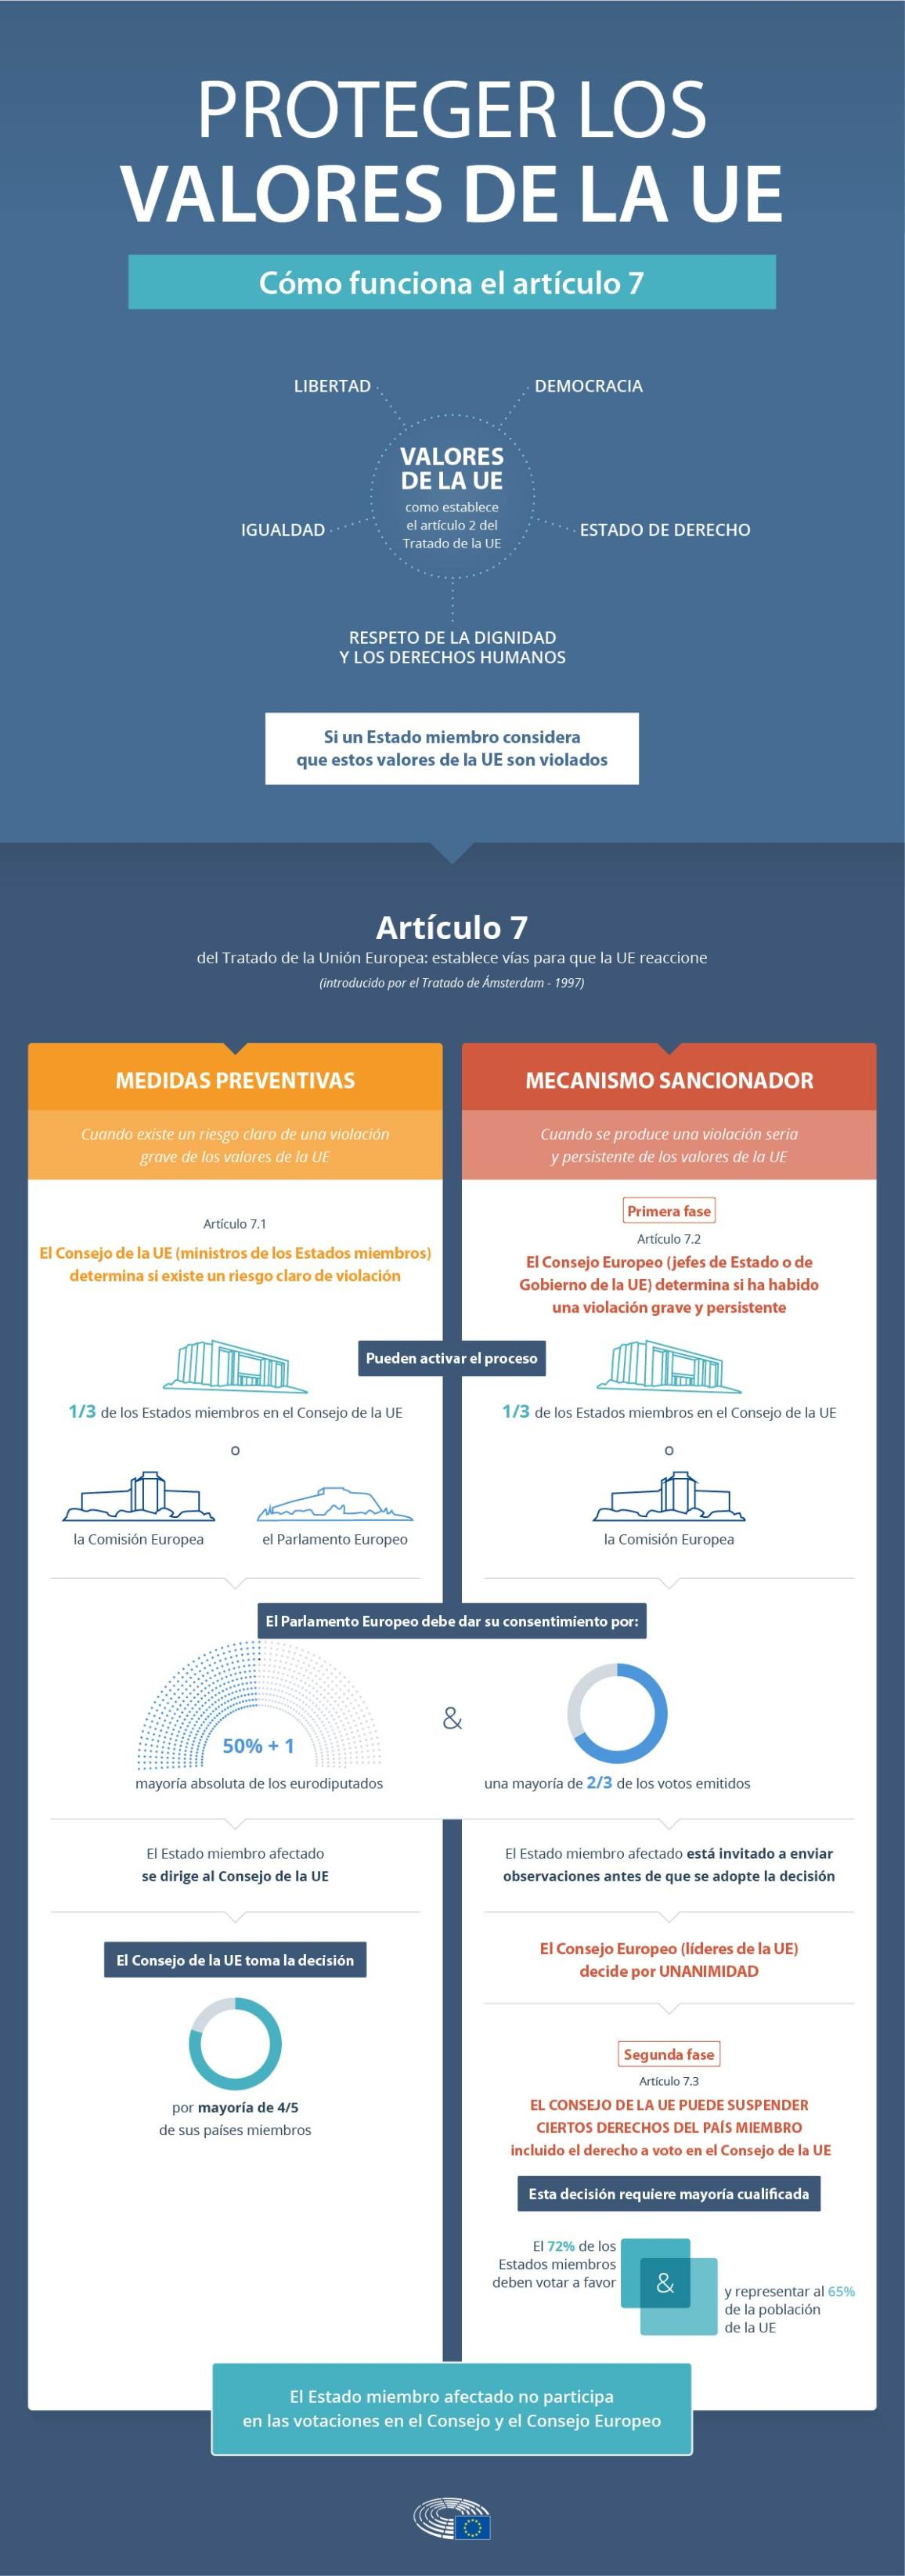 Infografía sobre el funcionamiento del artículo 7